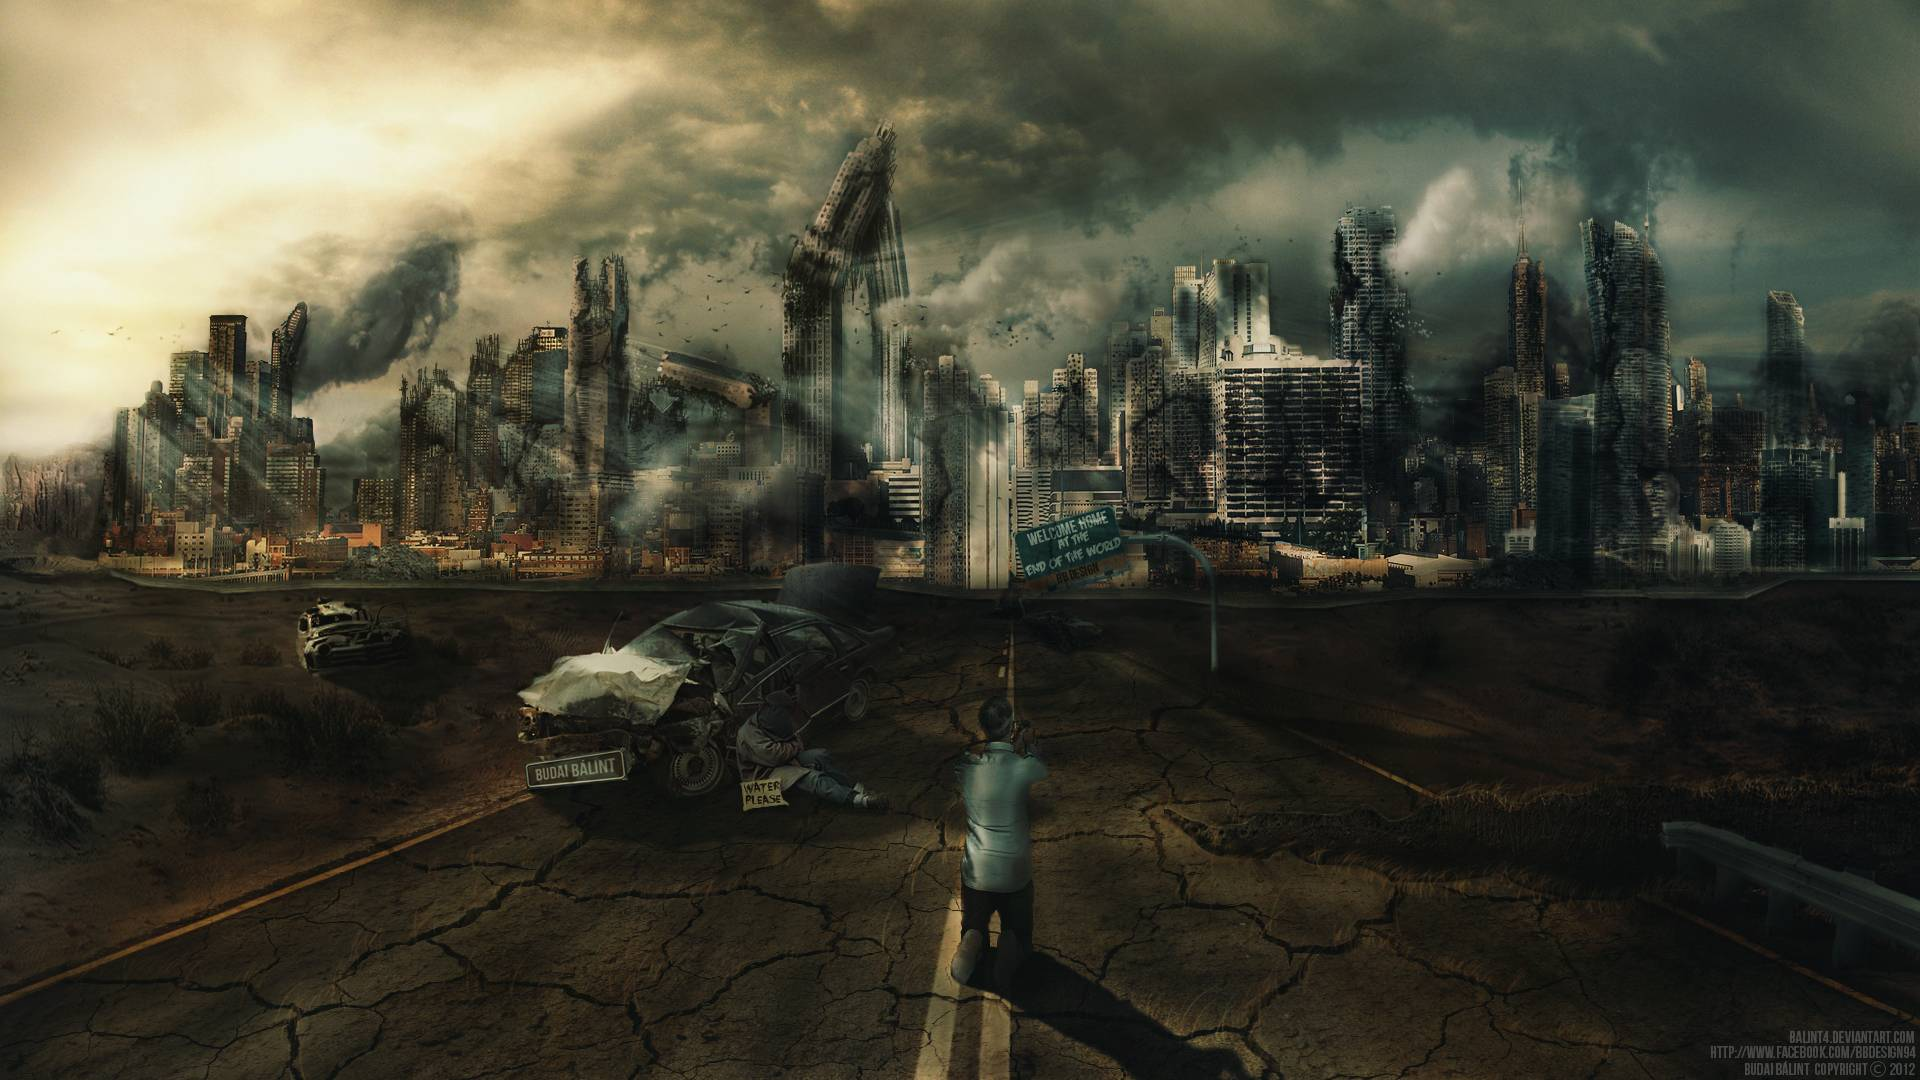 apocalyptic hd wallpaper 2560x1440 - photo #37